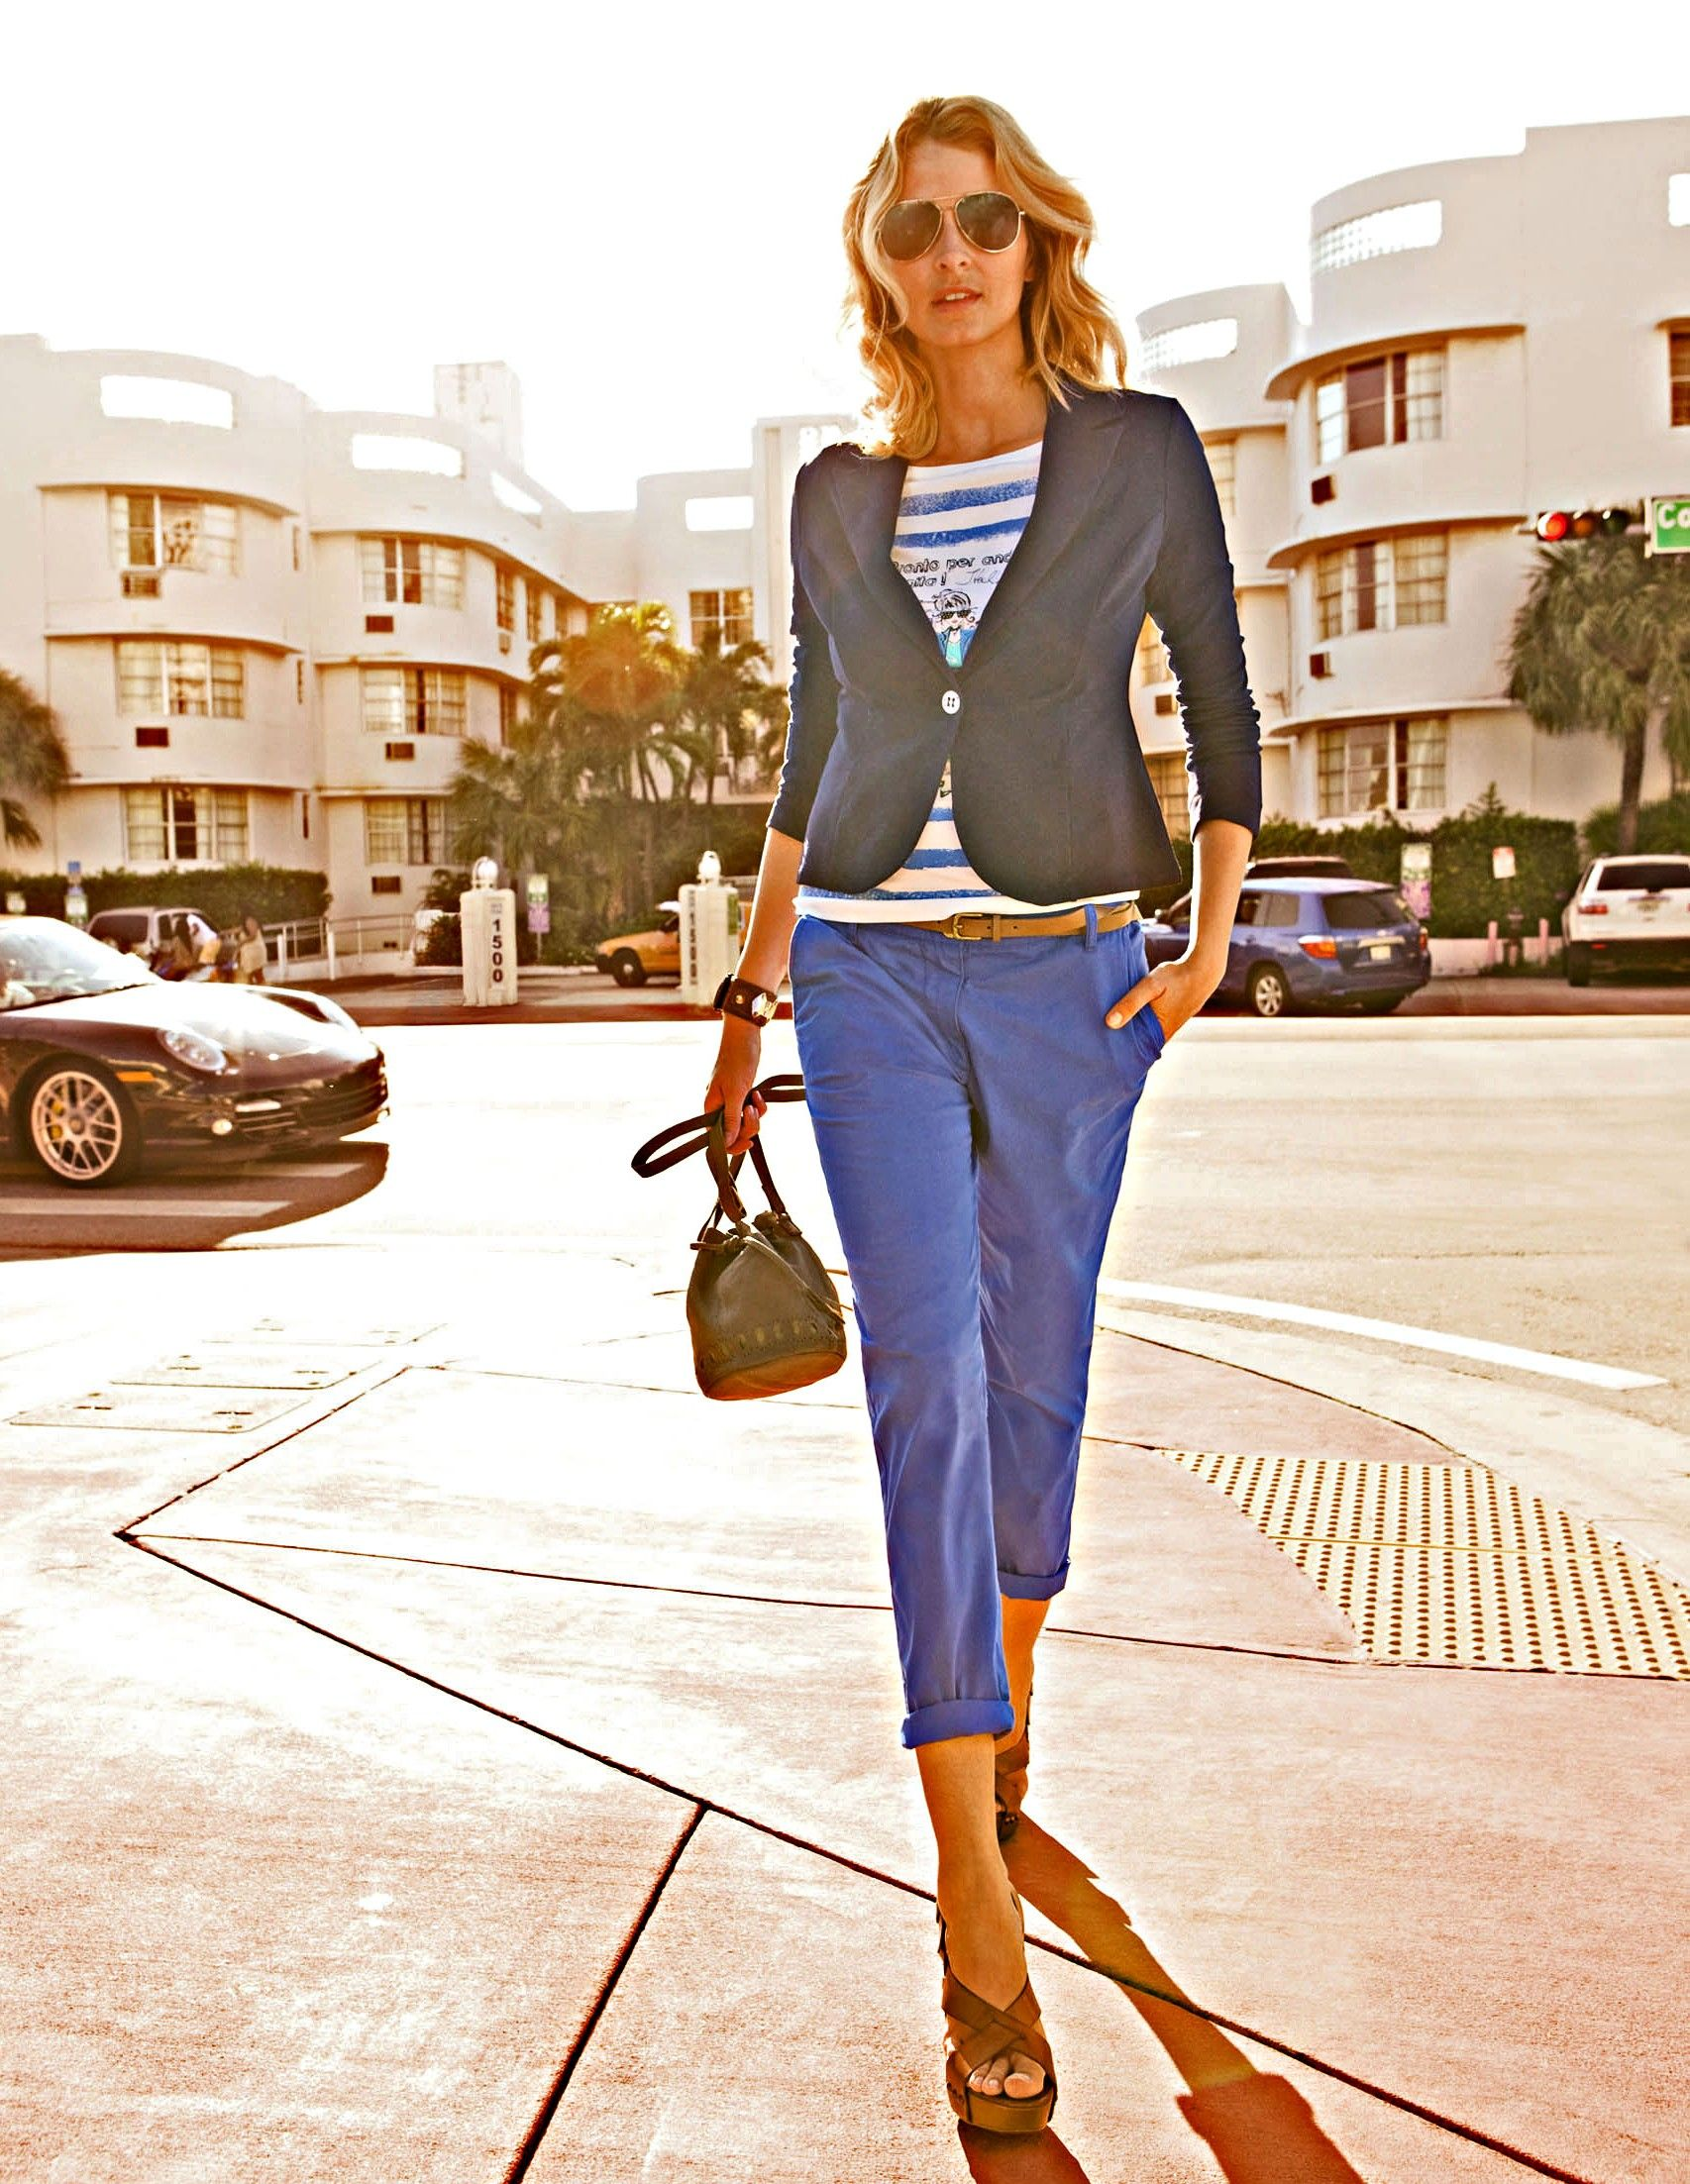 Women's Travel Cruise Wear for Women over 40 or 50. read more at ...